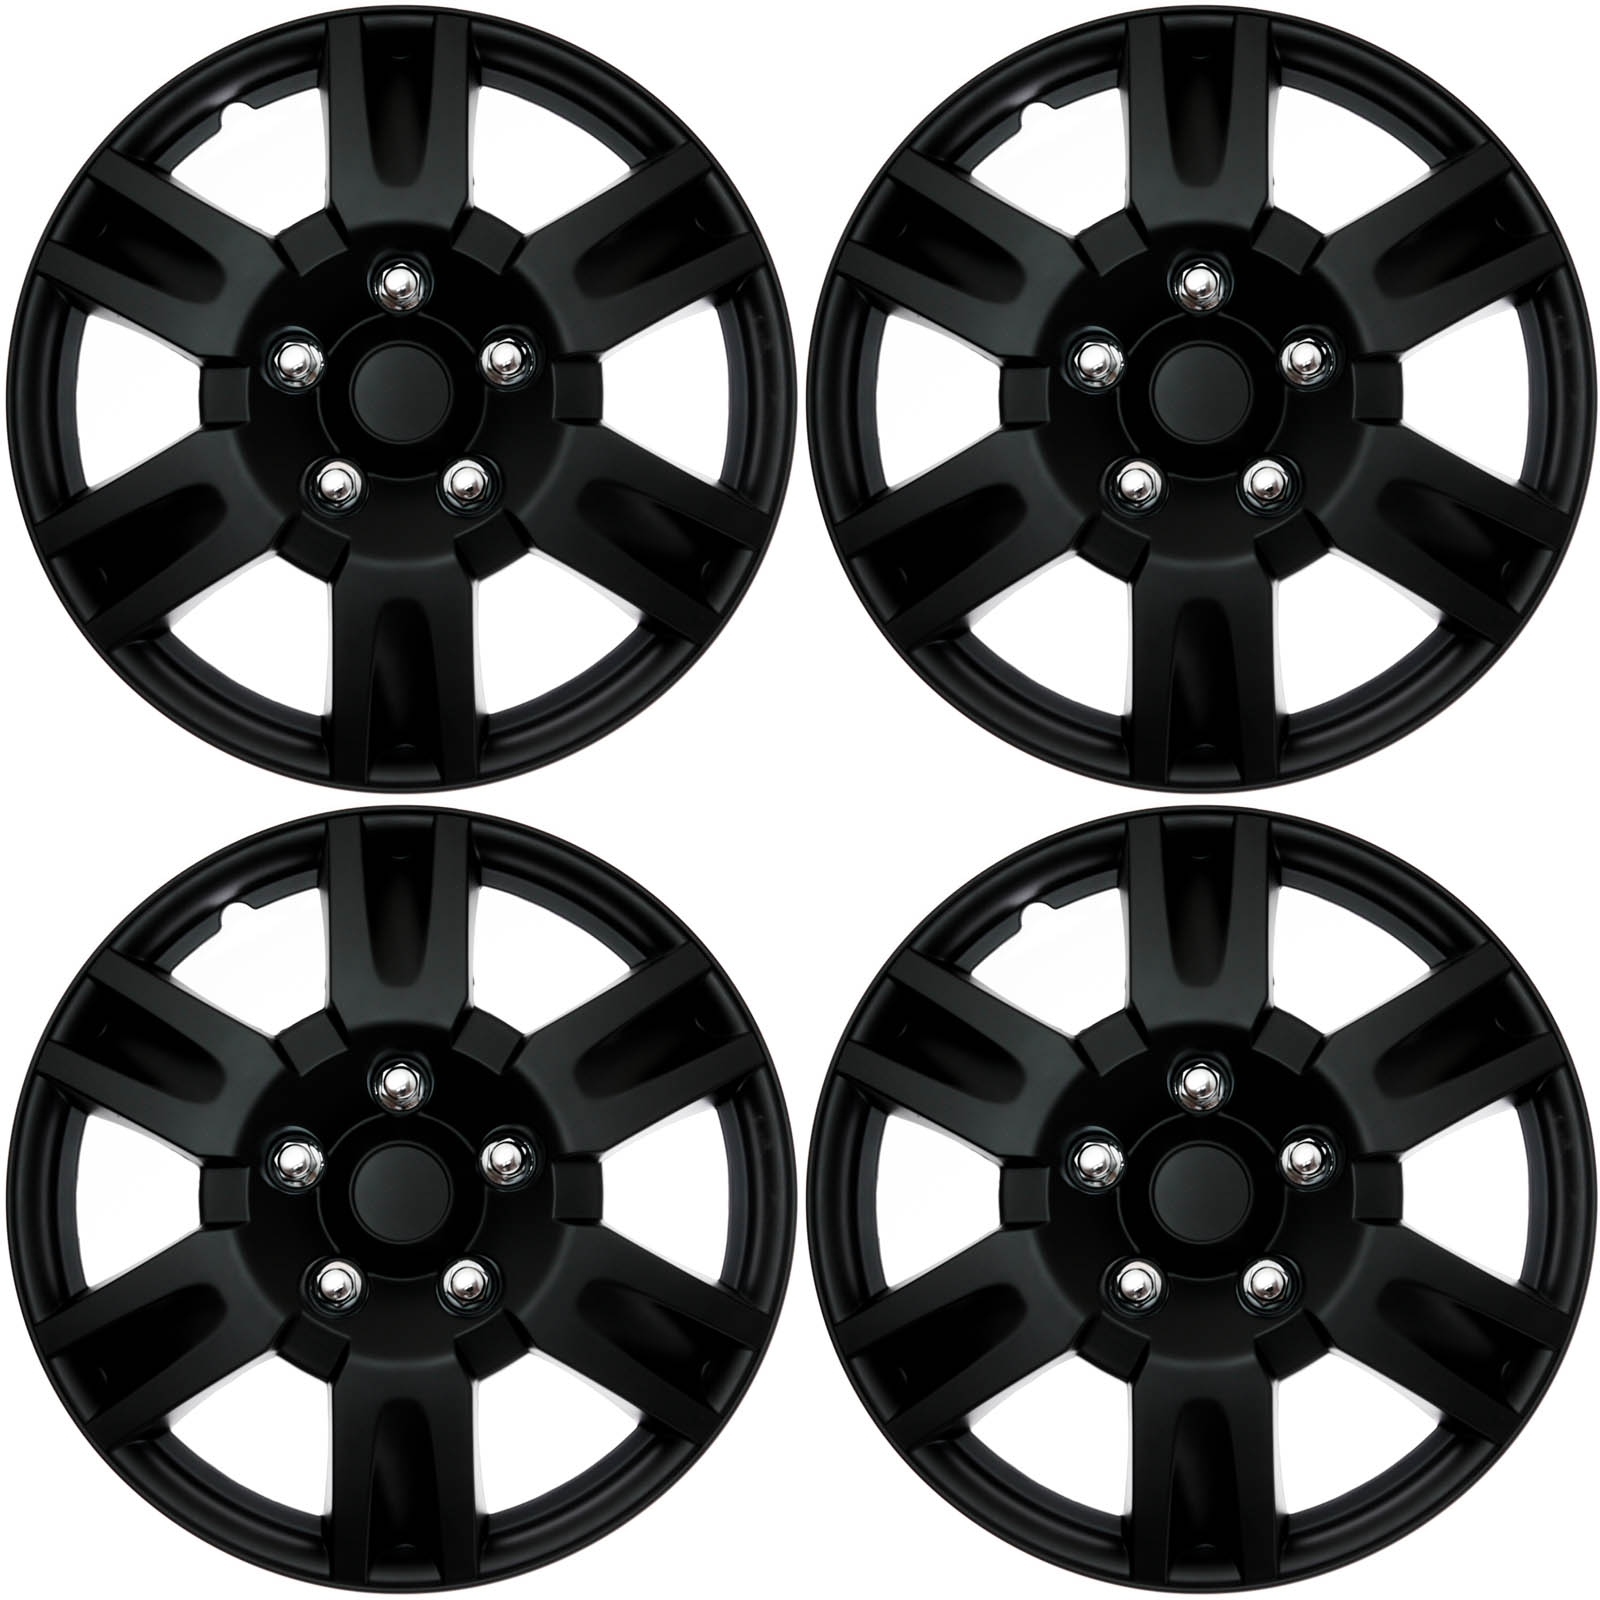 hight resolution of 4 pc set hub cap abs black matte 16 inch for oem steel wheel cover caps covers